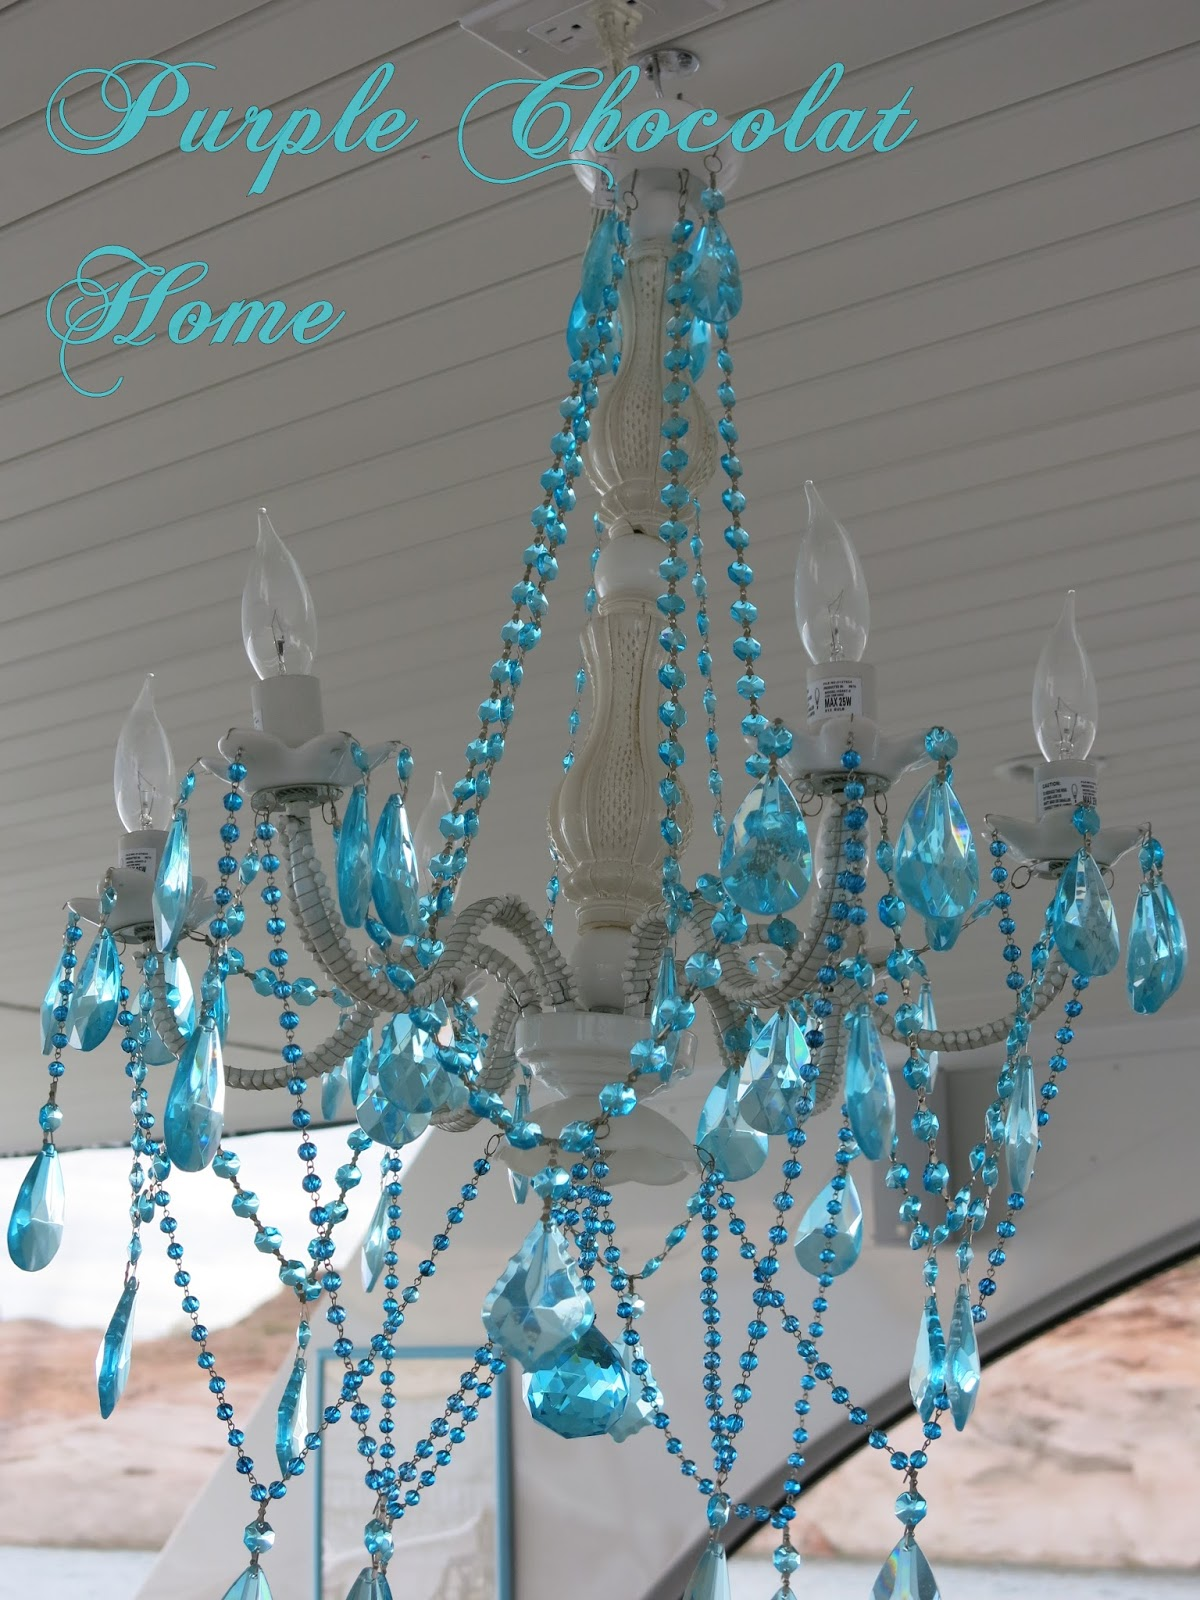 Outdoor Chandelier Makeover Purple Chocolat Home